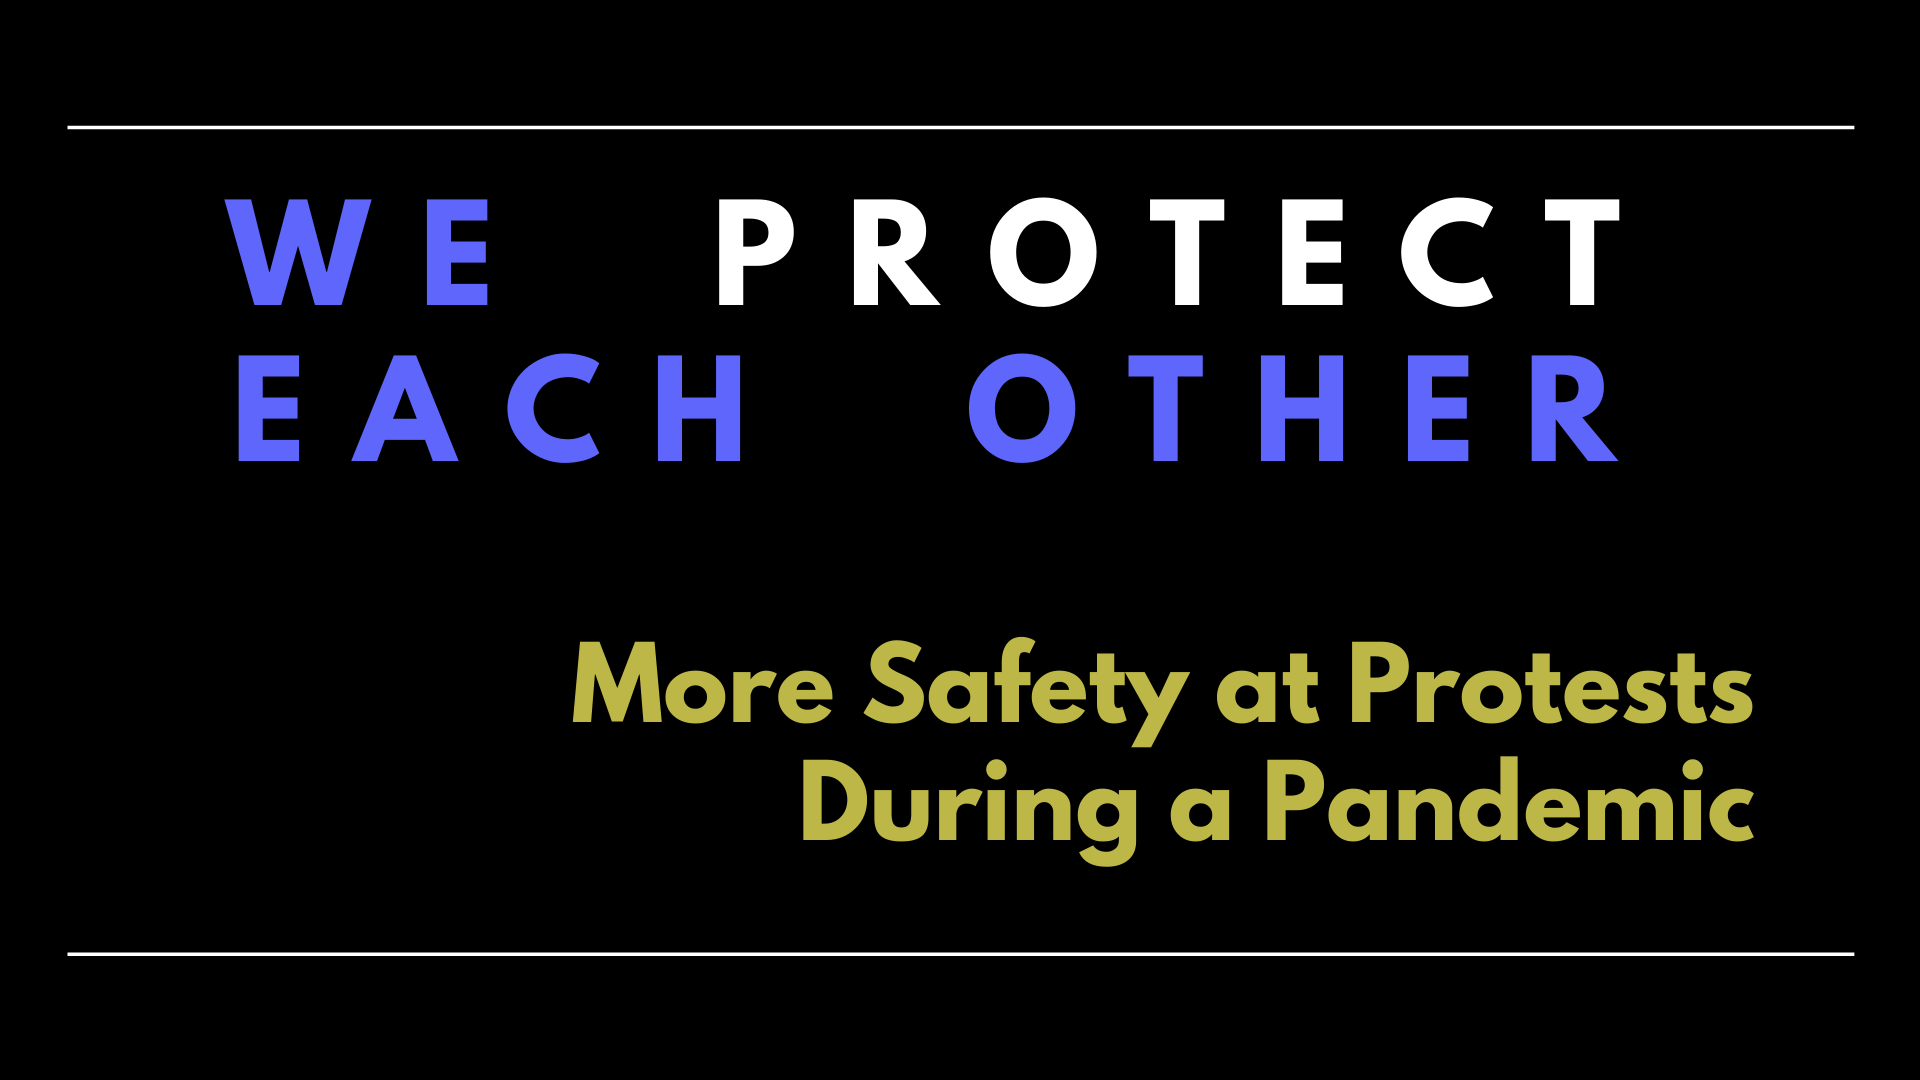 Text Graphic: We Protect Each Other - More Safety at Protests During a Pandemic